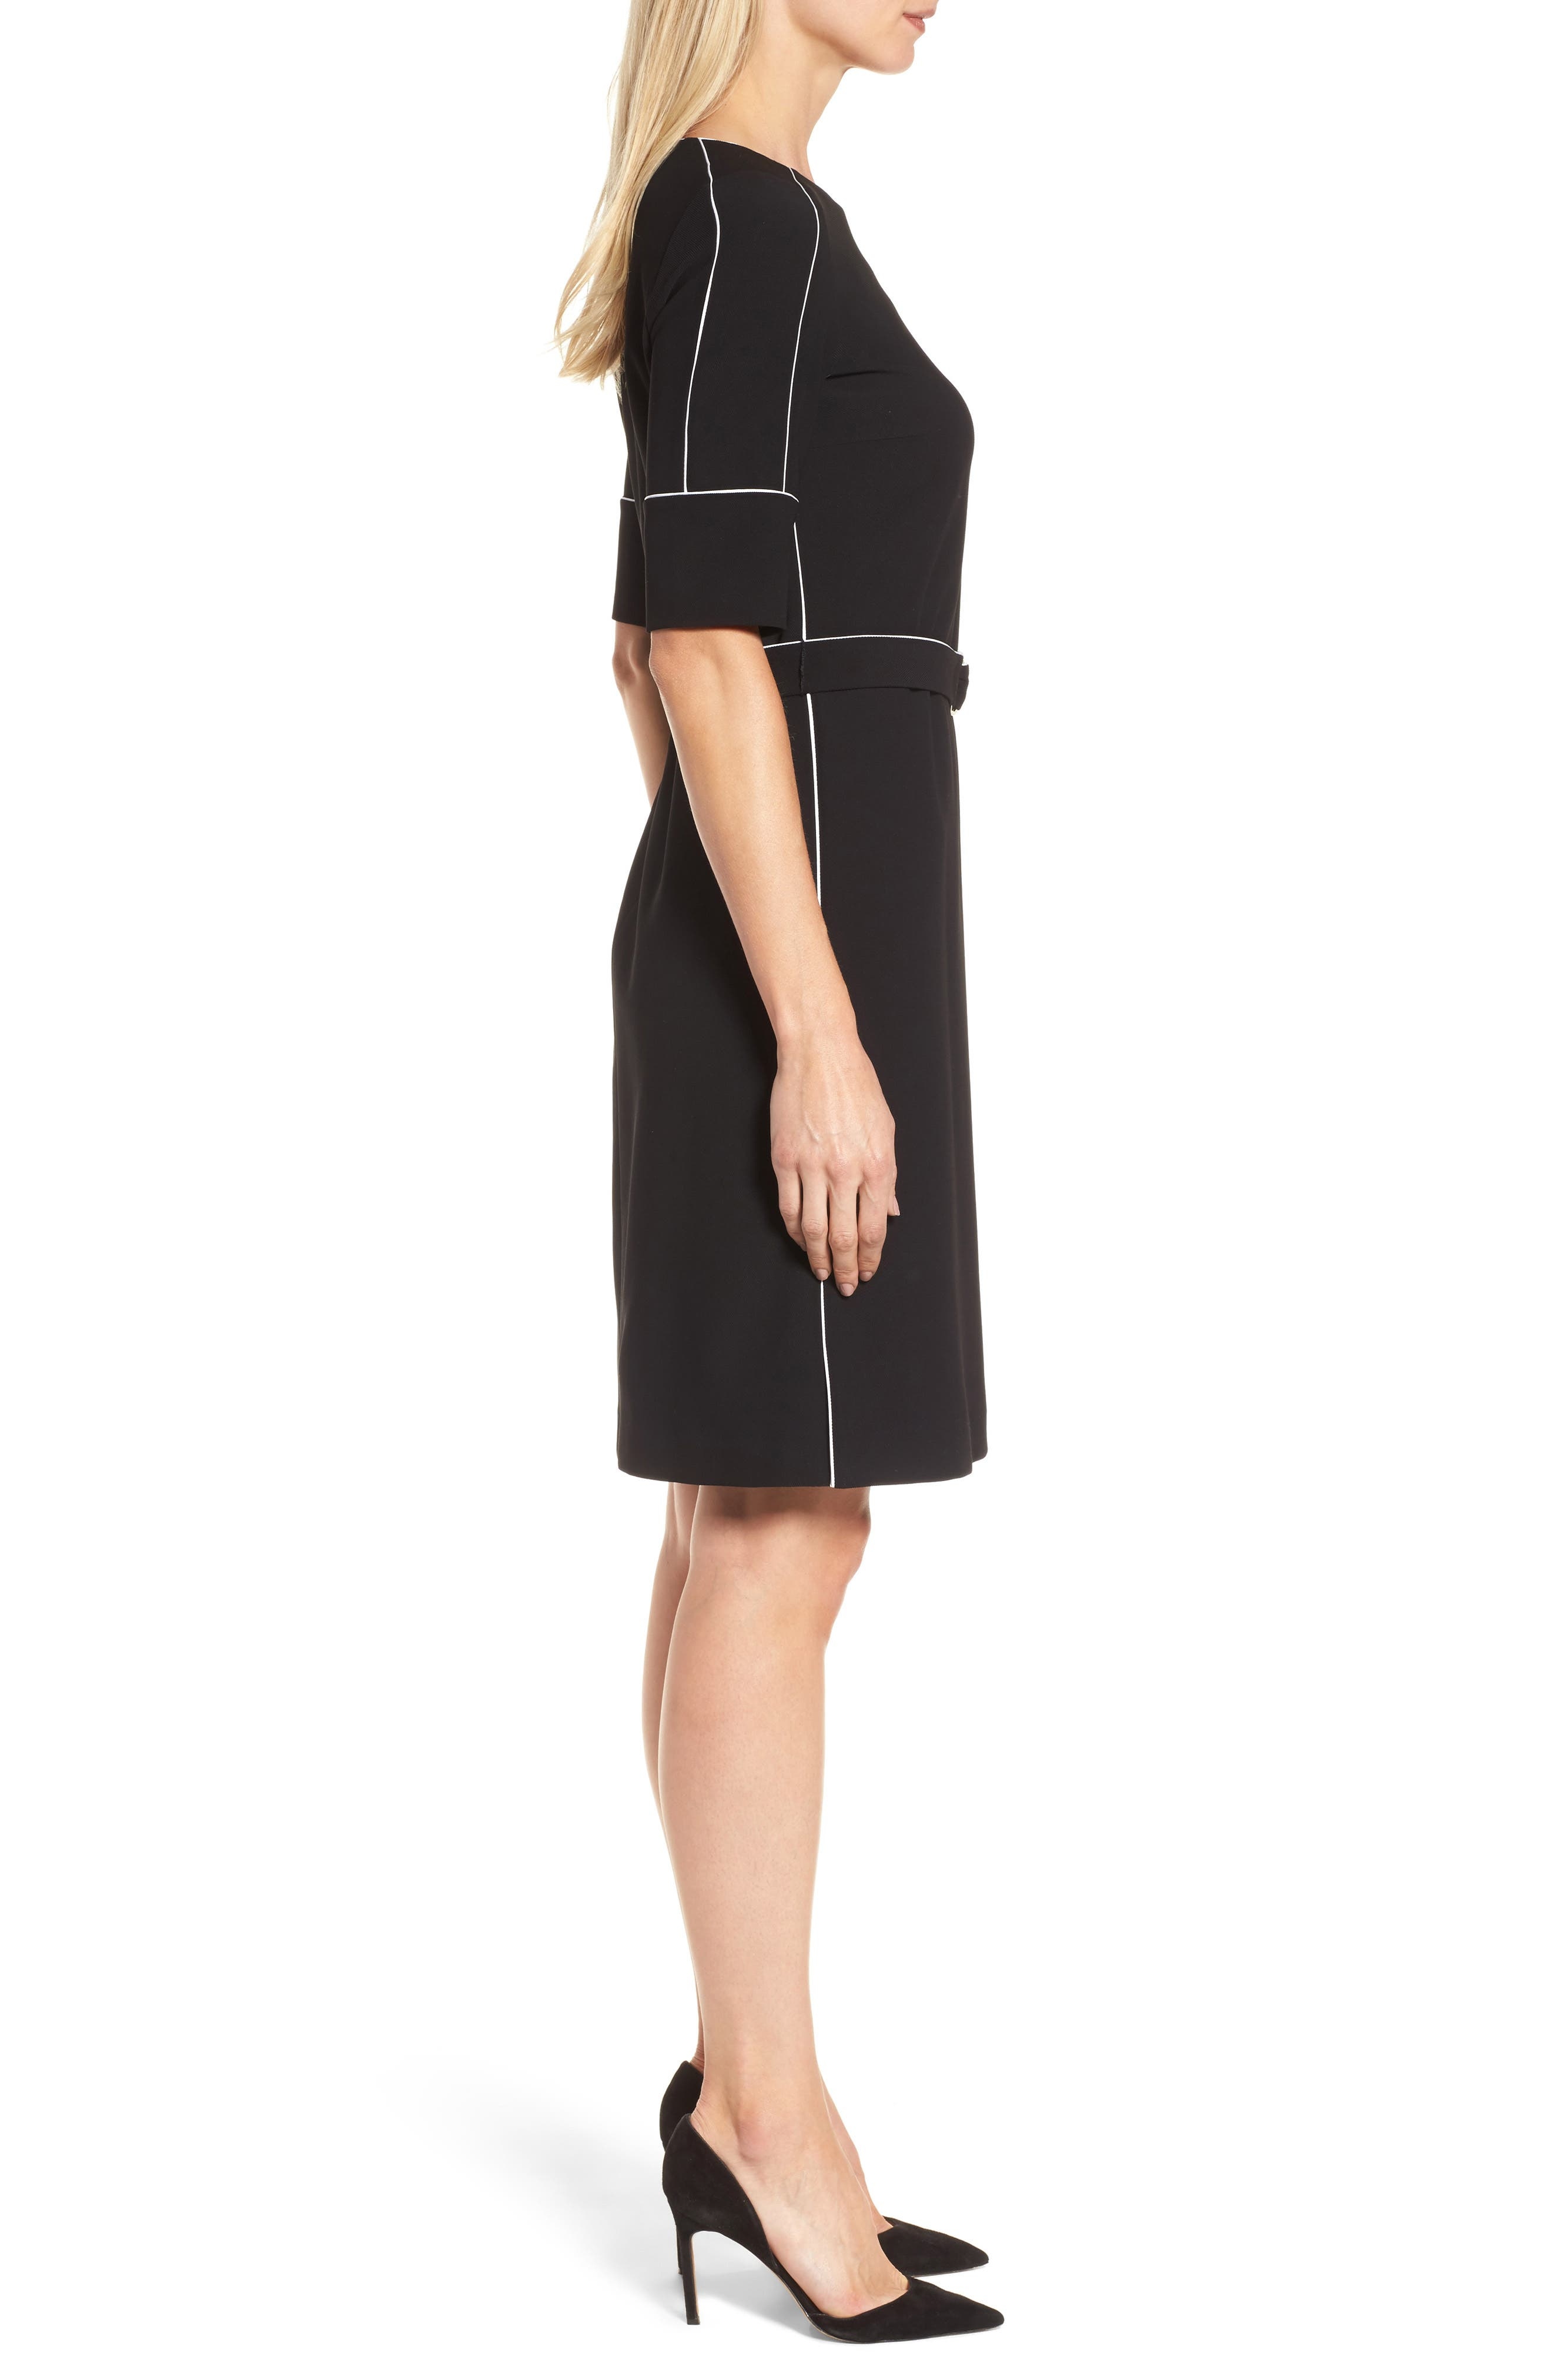 Duwimea Seamed Pencil Dress,                             Alternate thumbnail 3, color,                             Black